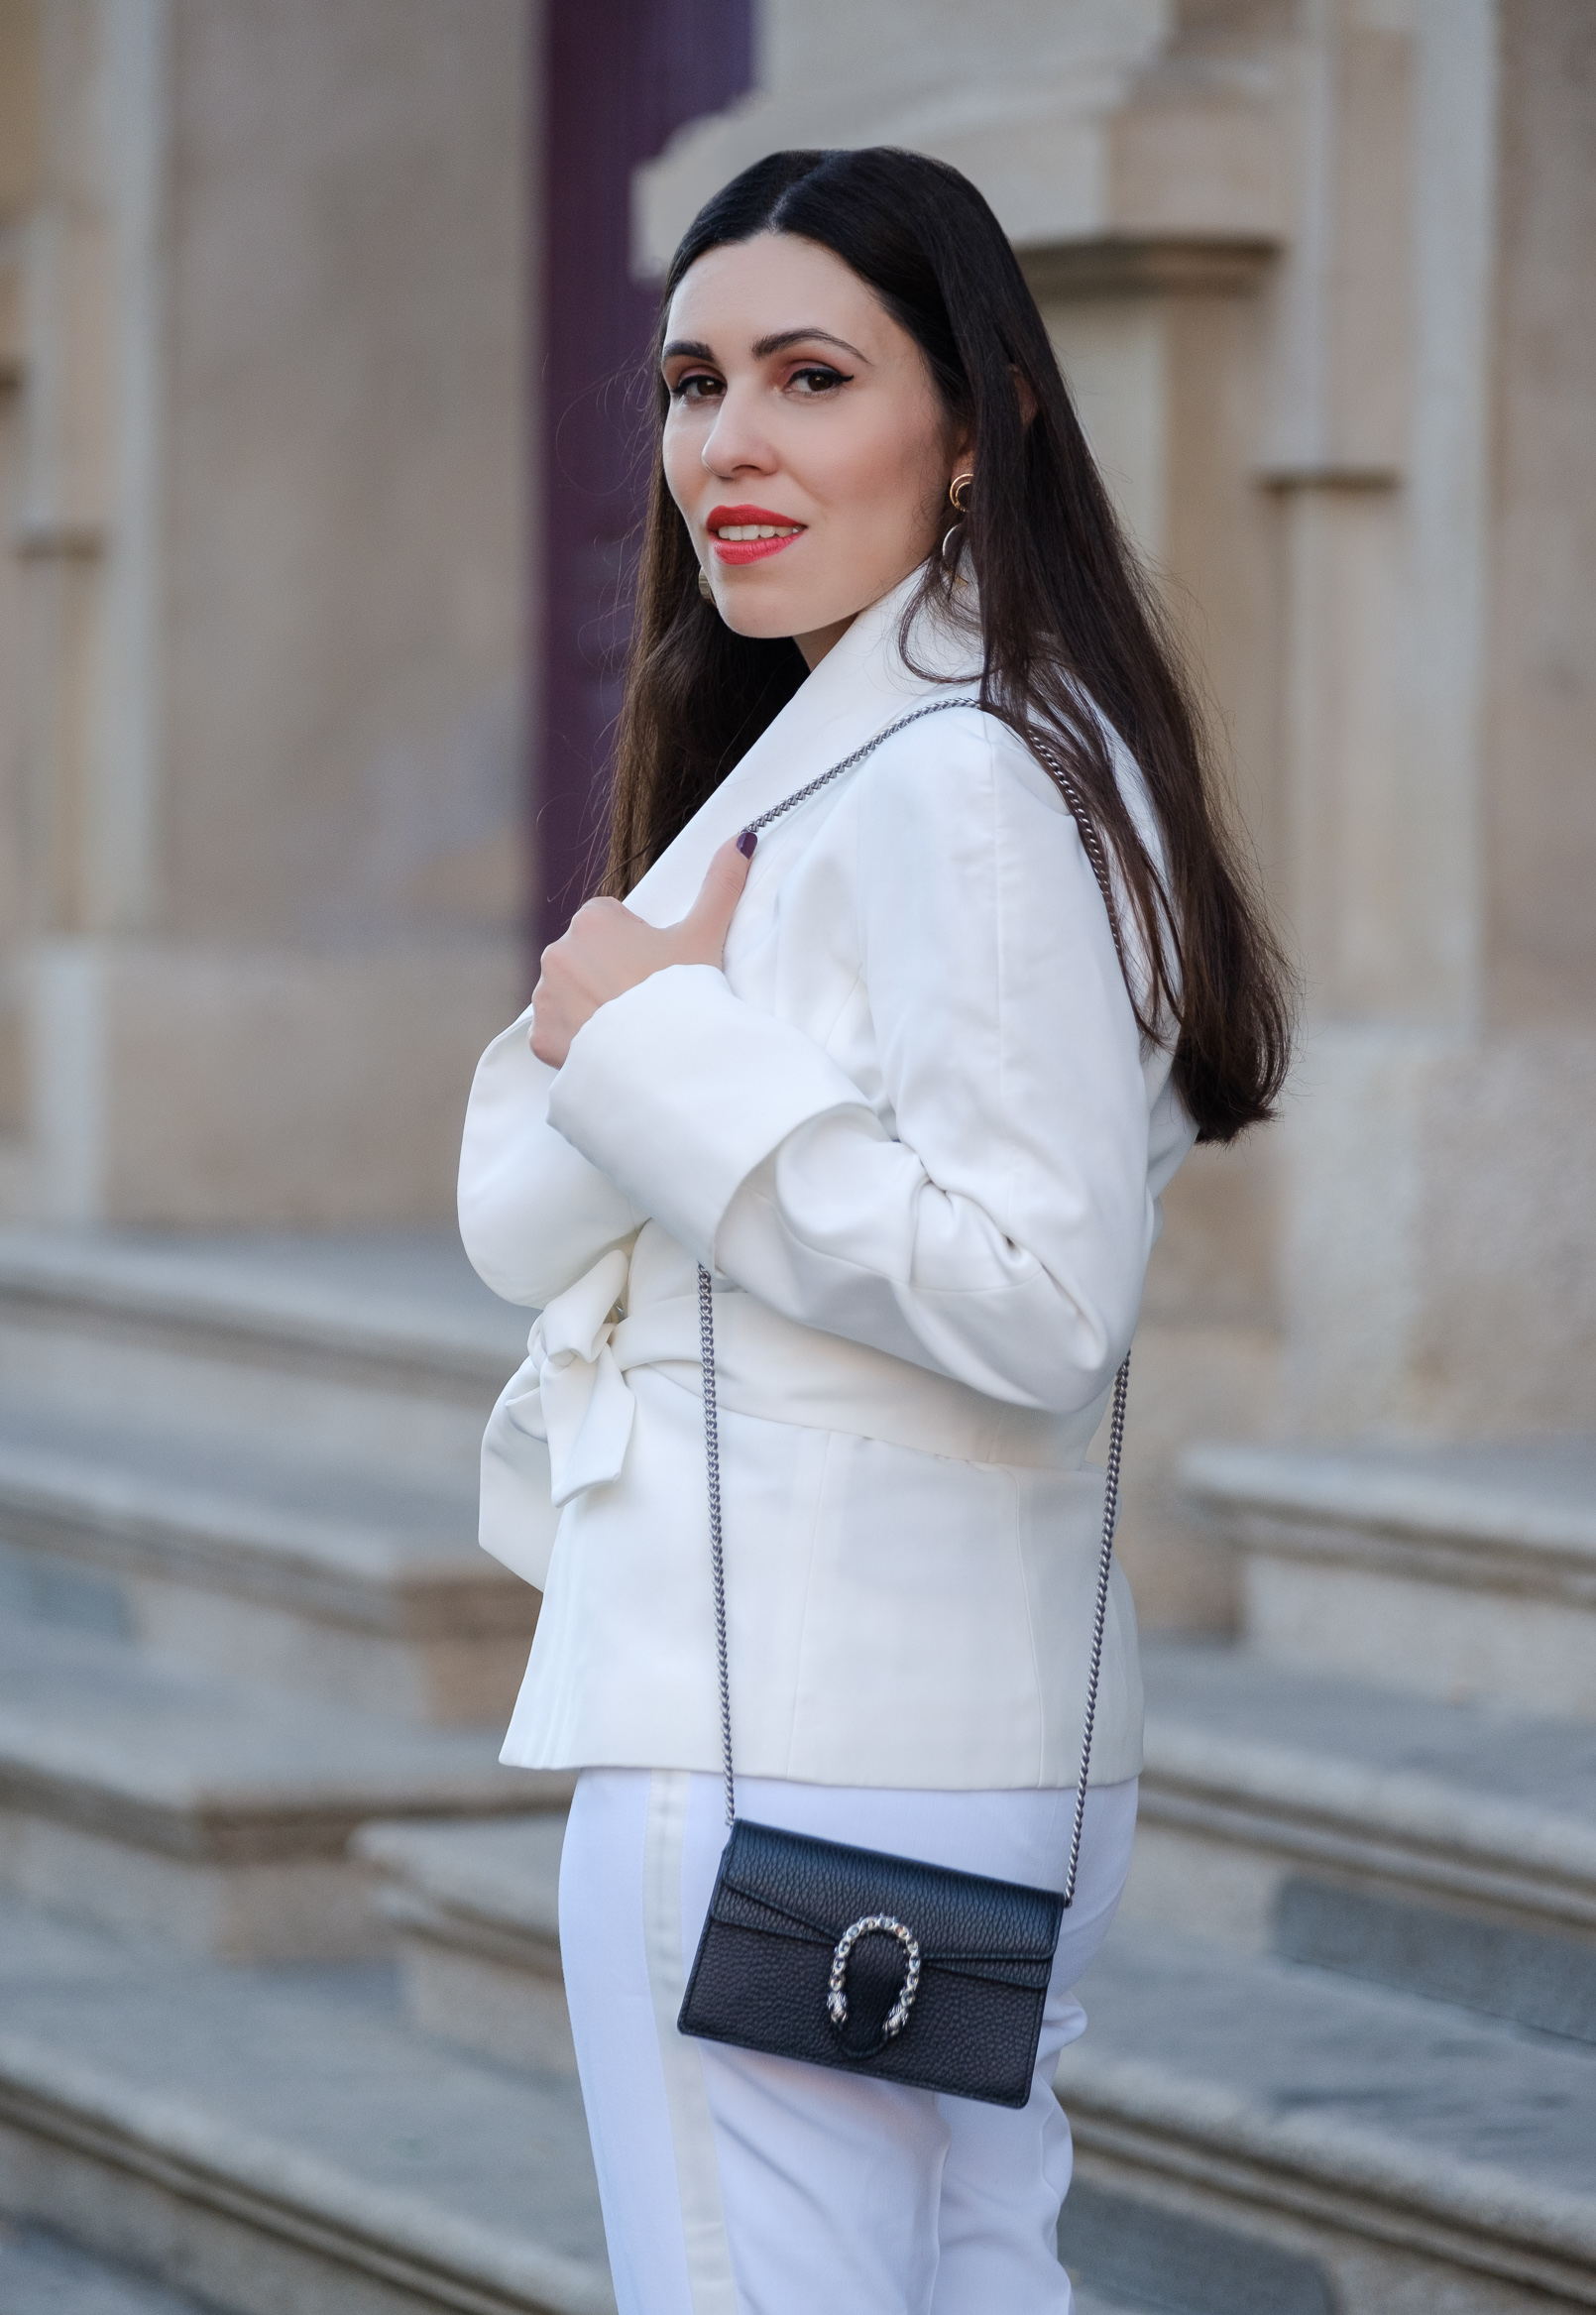 Le Fashionaire white zara trousers White zara bow jacket gucci mini dionysus bag 1739 EN white zara trousers White zara bow jacket gucci mini dionysus bag 1739 EN